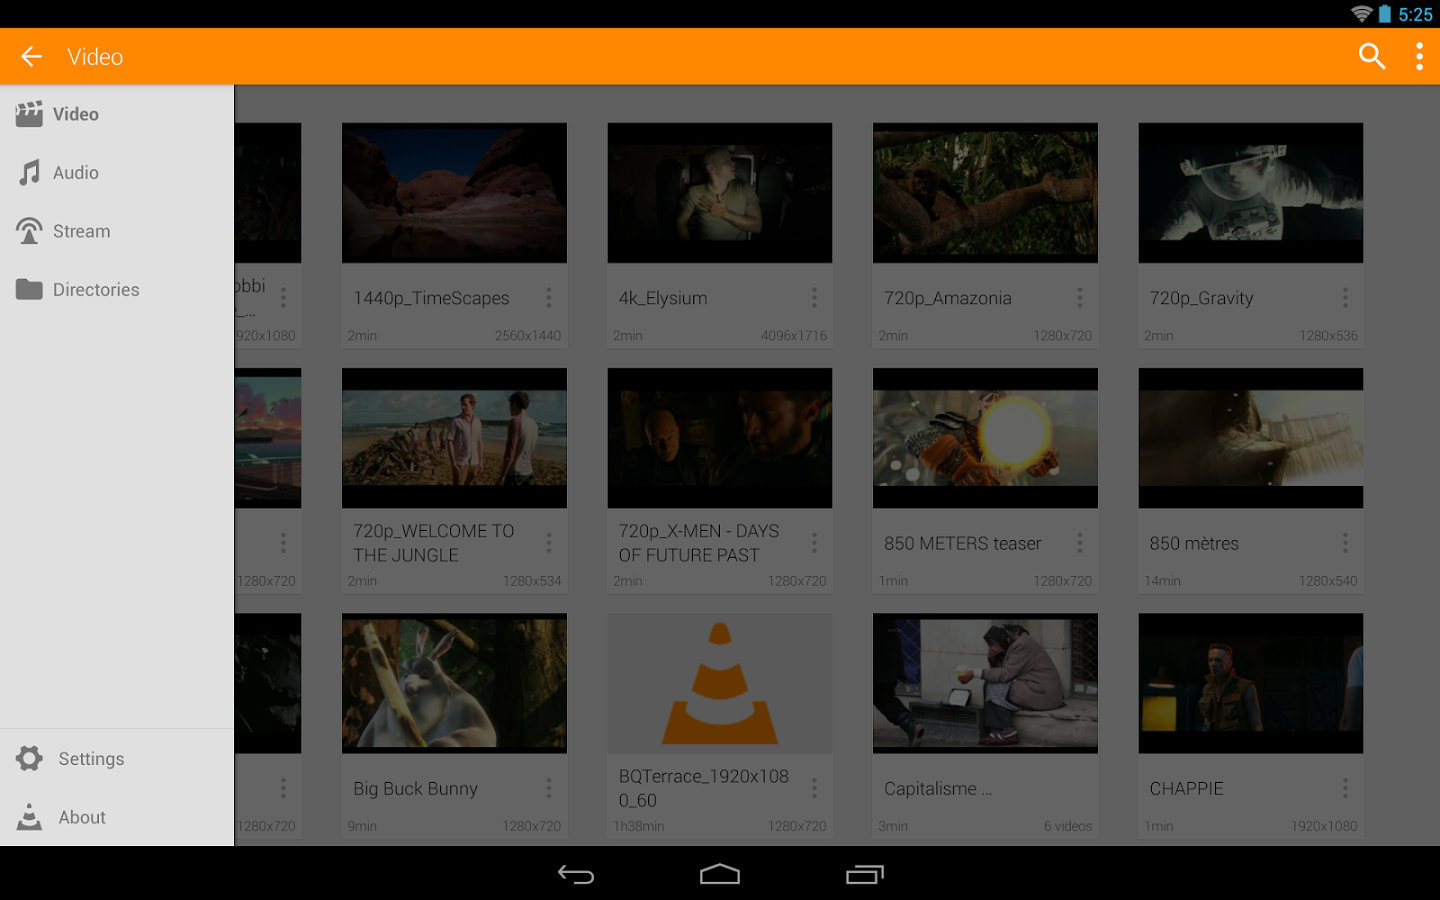 how to cut video in vlc android